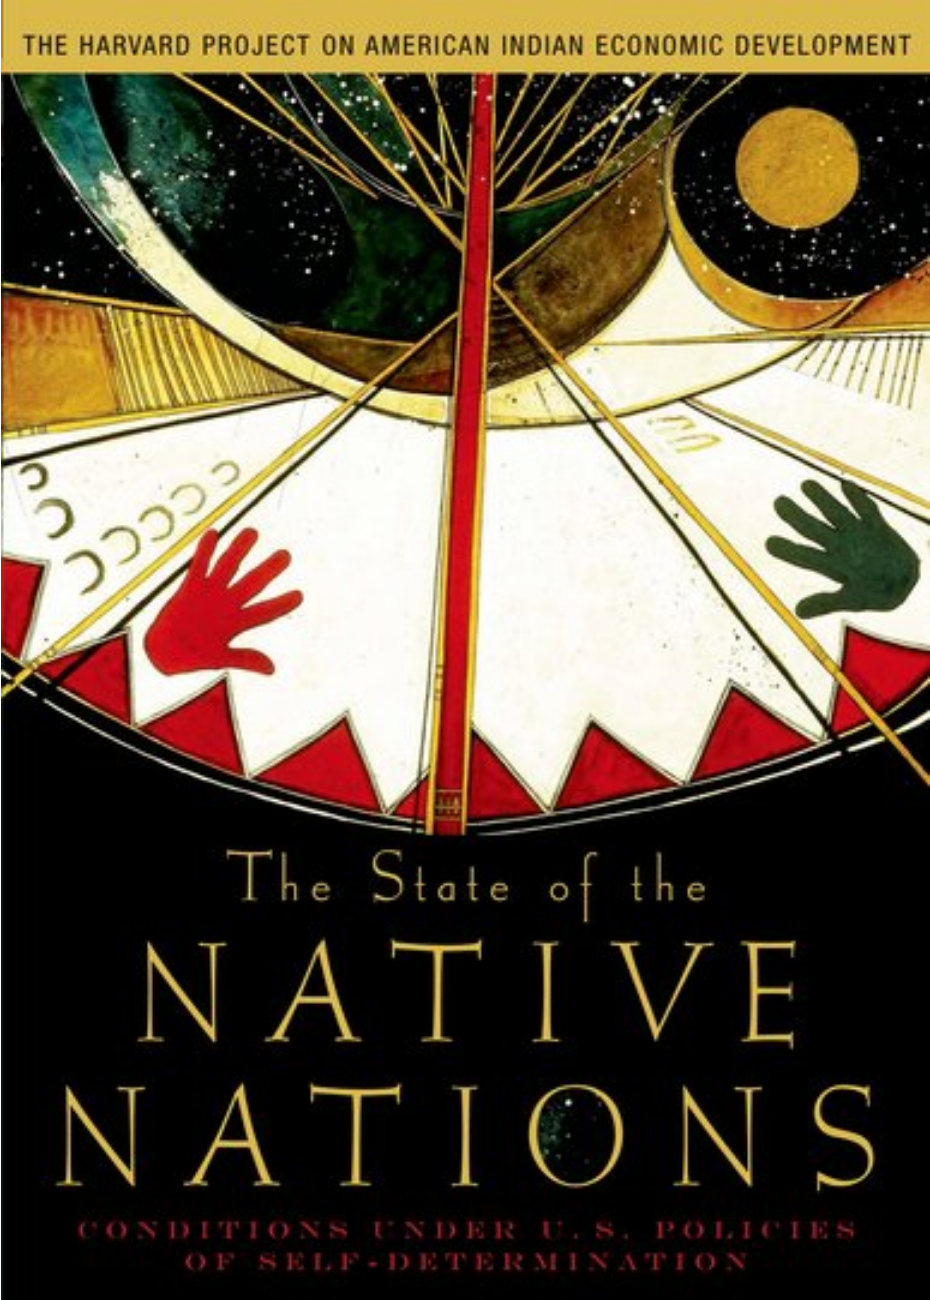 The State of Native Nations thumbnail